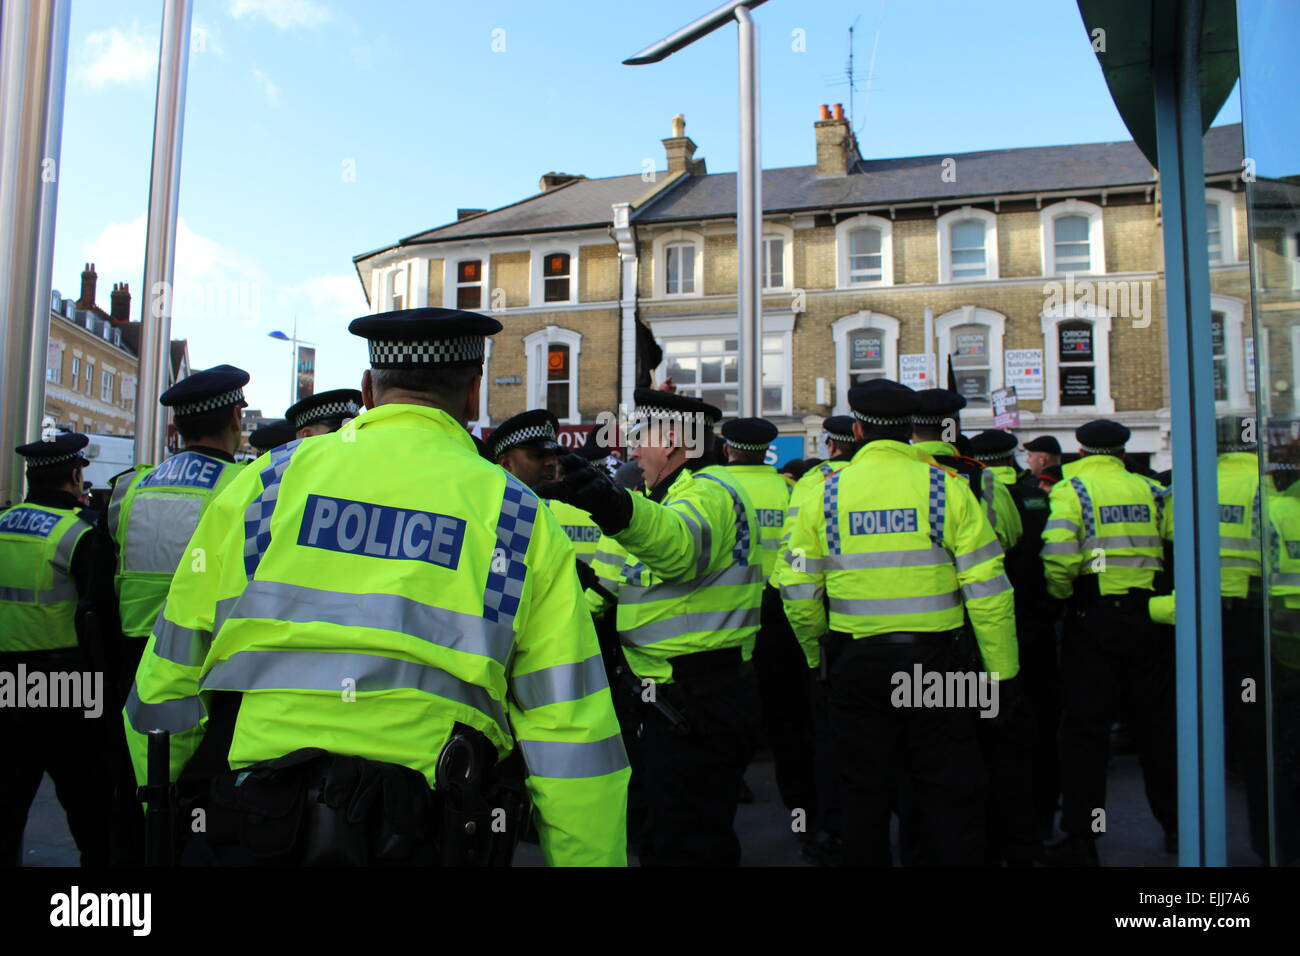 Police during demonstration in UK - Stock Image